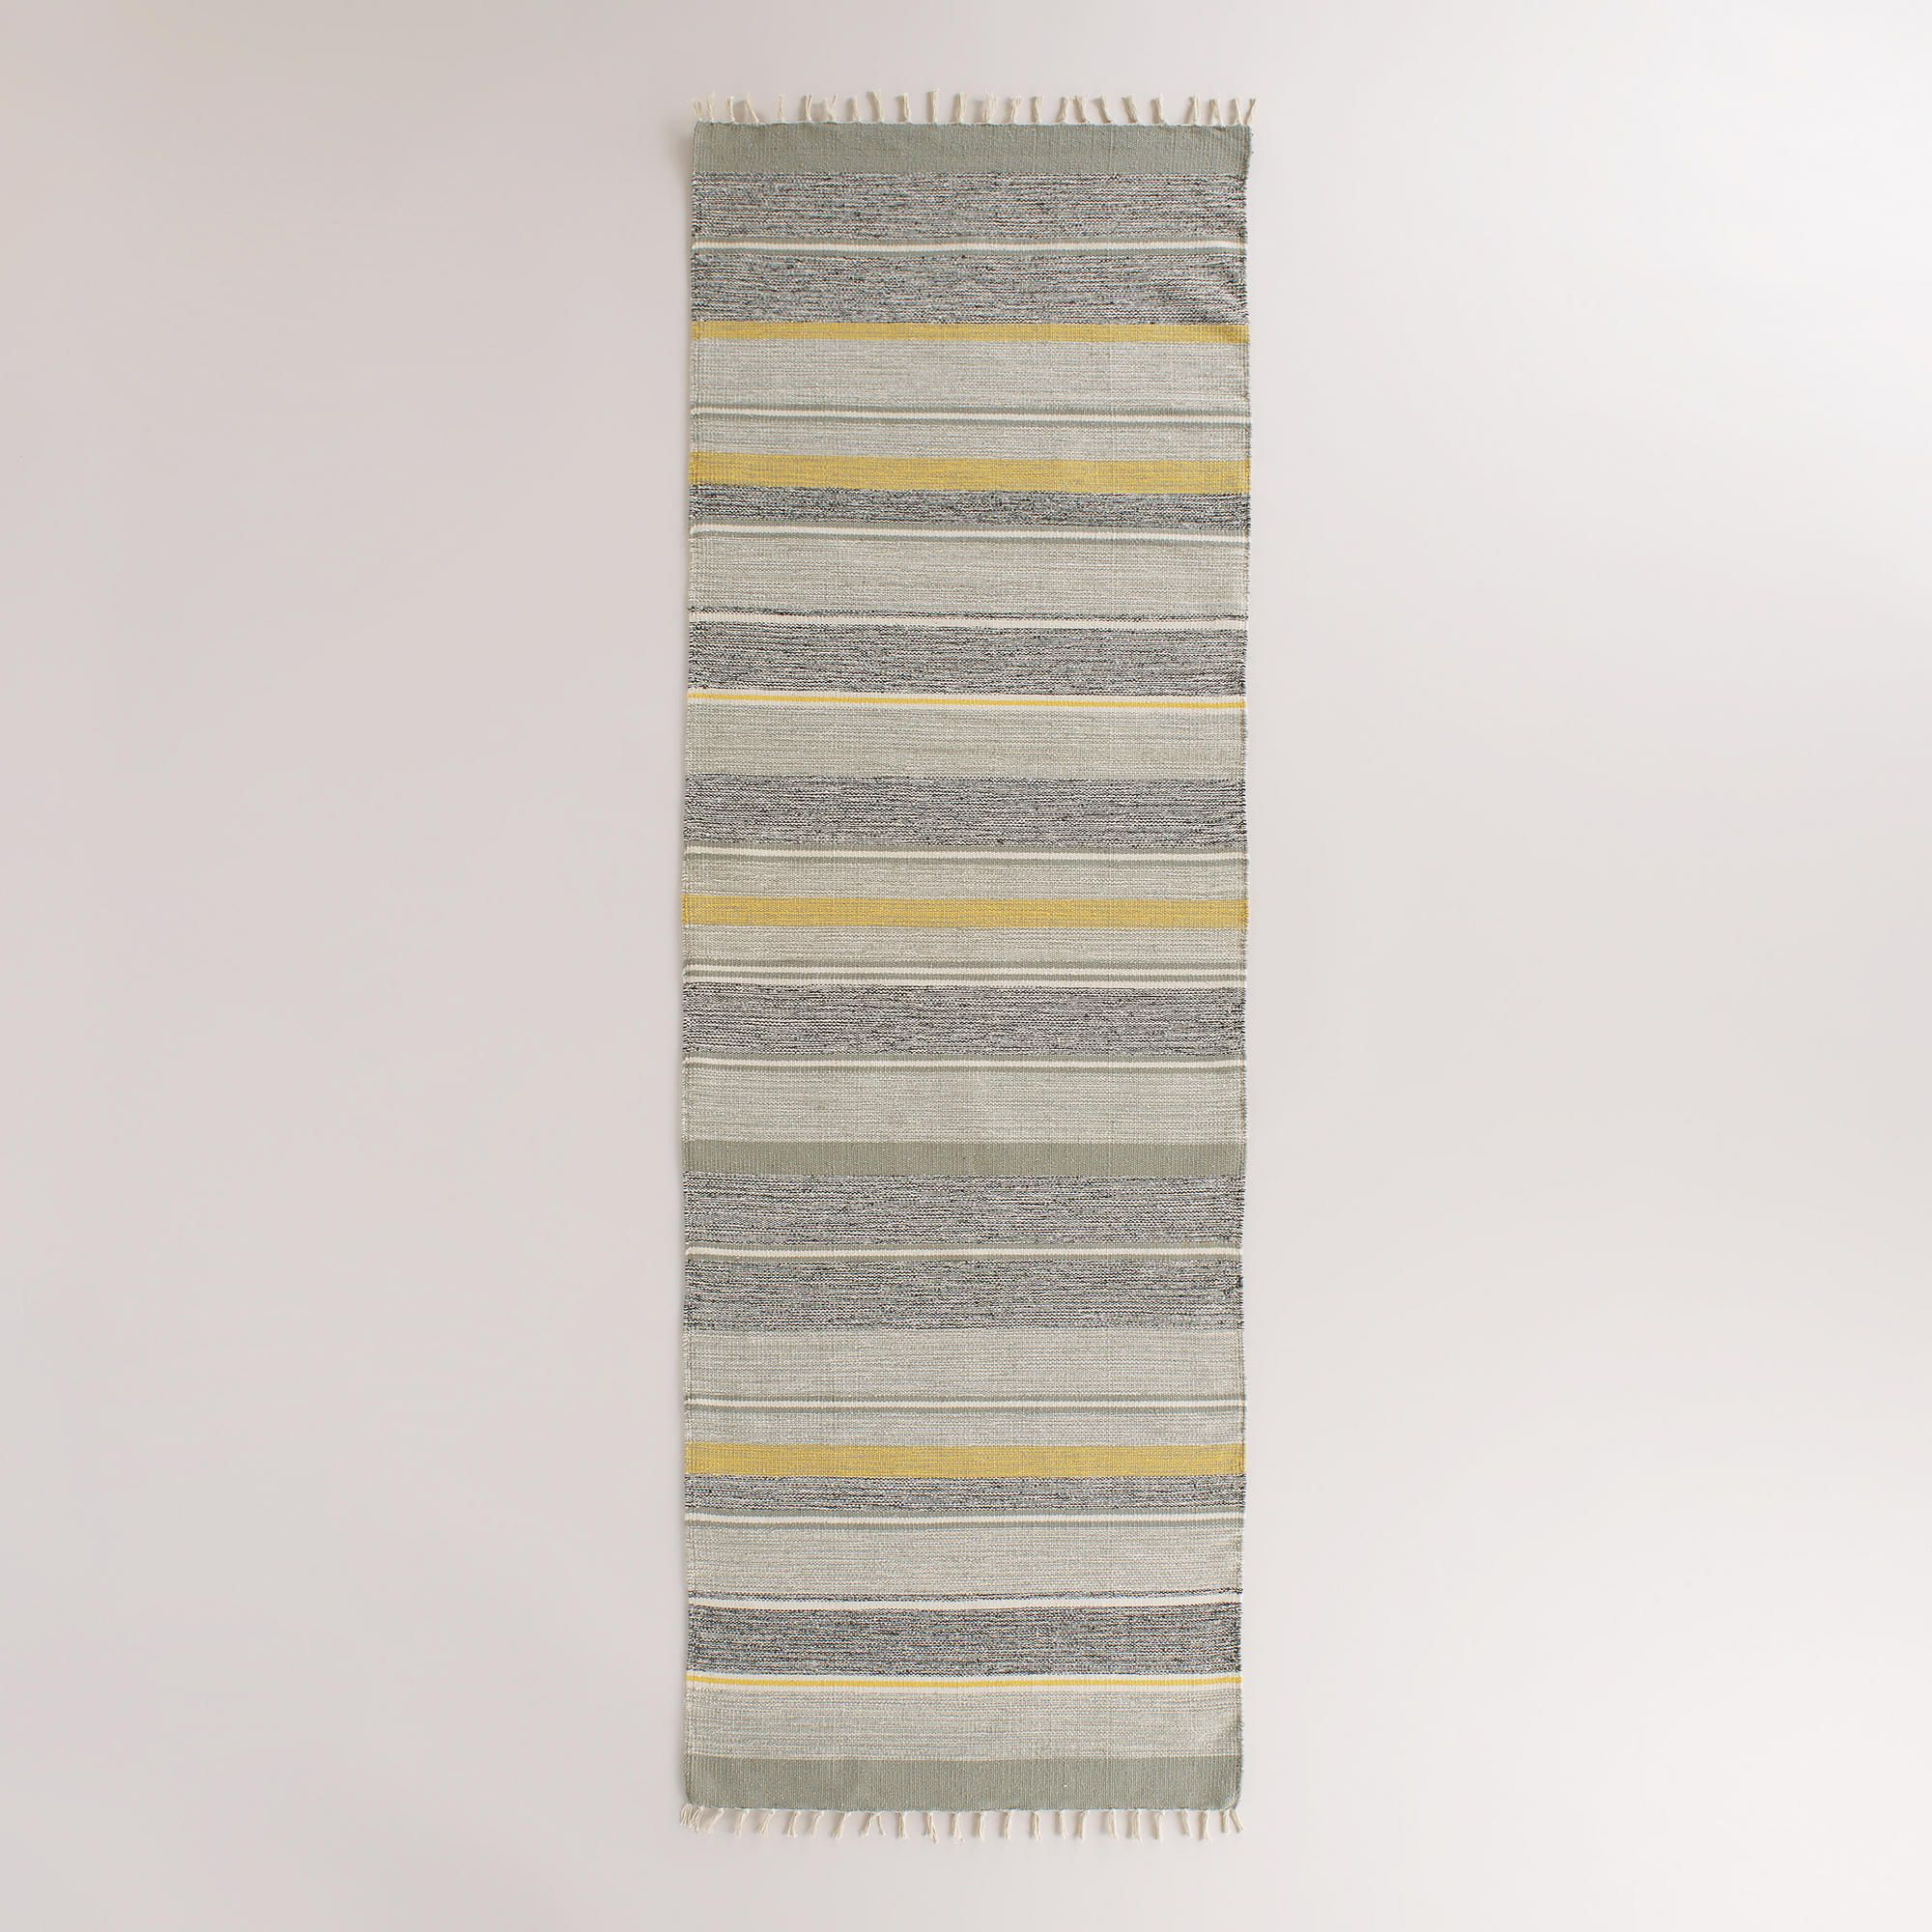 2 5 X8 Yellow And Gray Striped Dhurrie Floor Runner World Market For Entrance Floor Runners Rugs Rug World